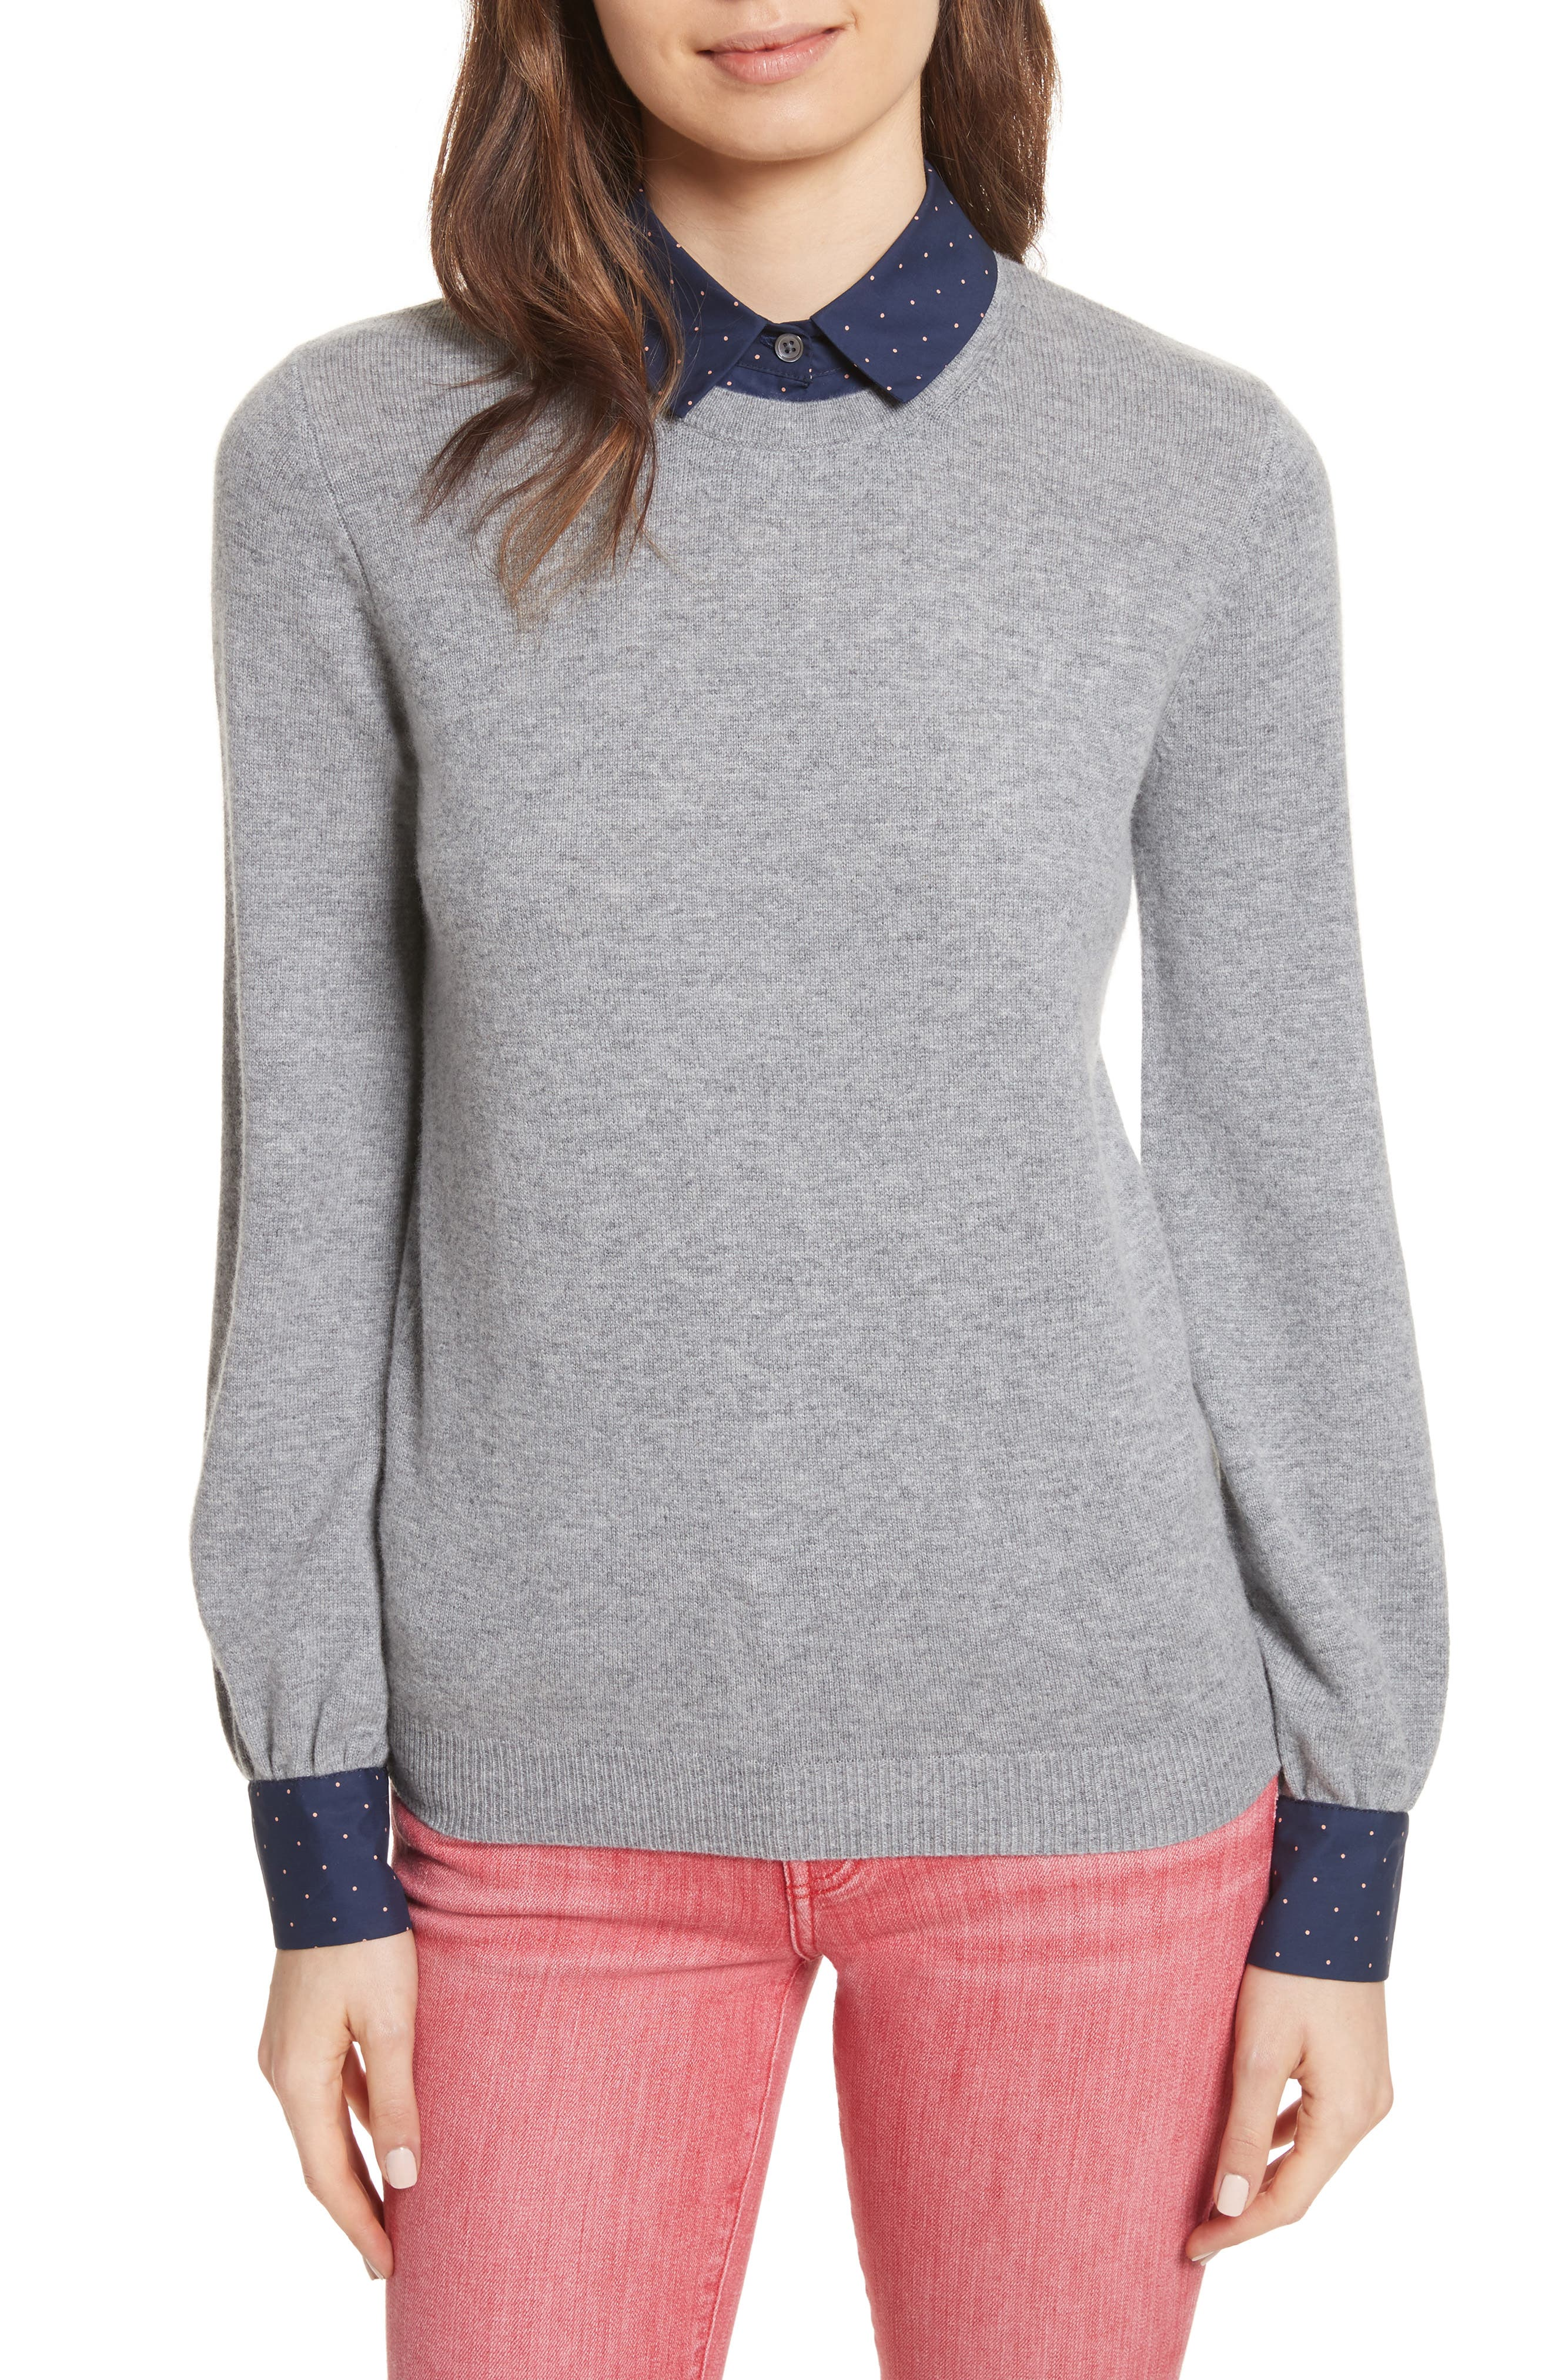 Bahiti Woven Trim Wool & Cashmere Sweater,                             Main thumbnail 1, color,                             Heather Grey/ Dark Navy